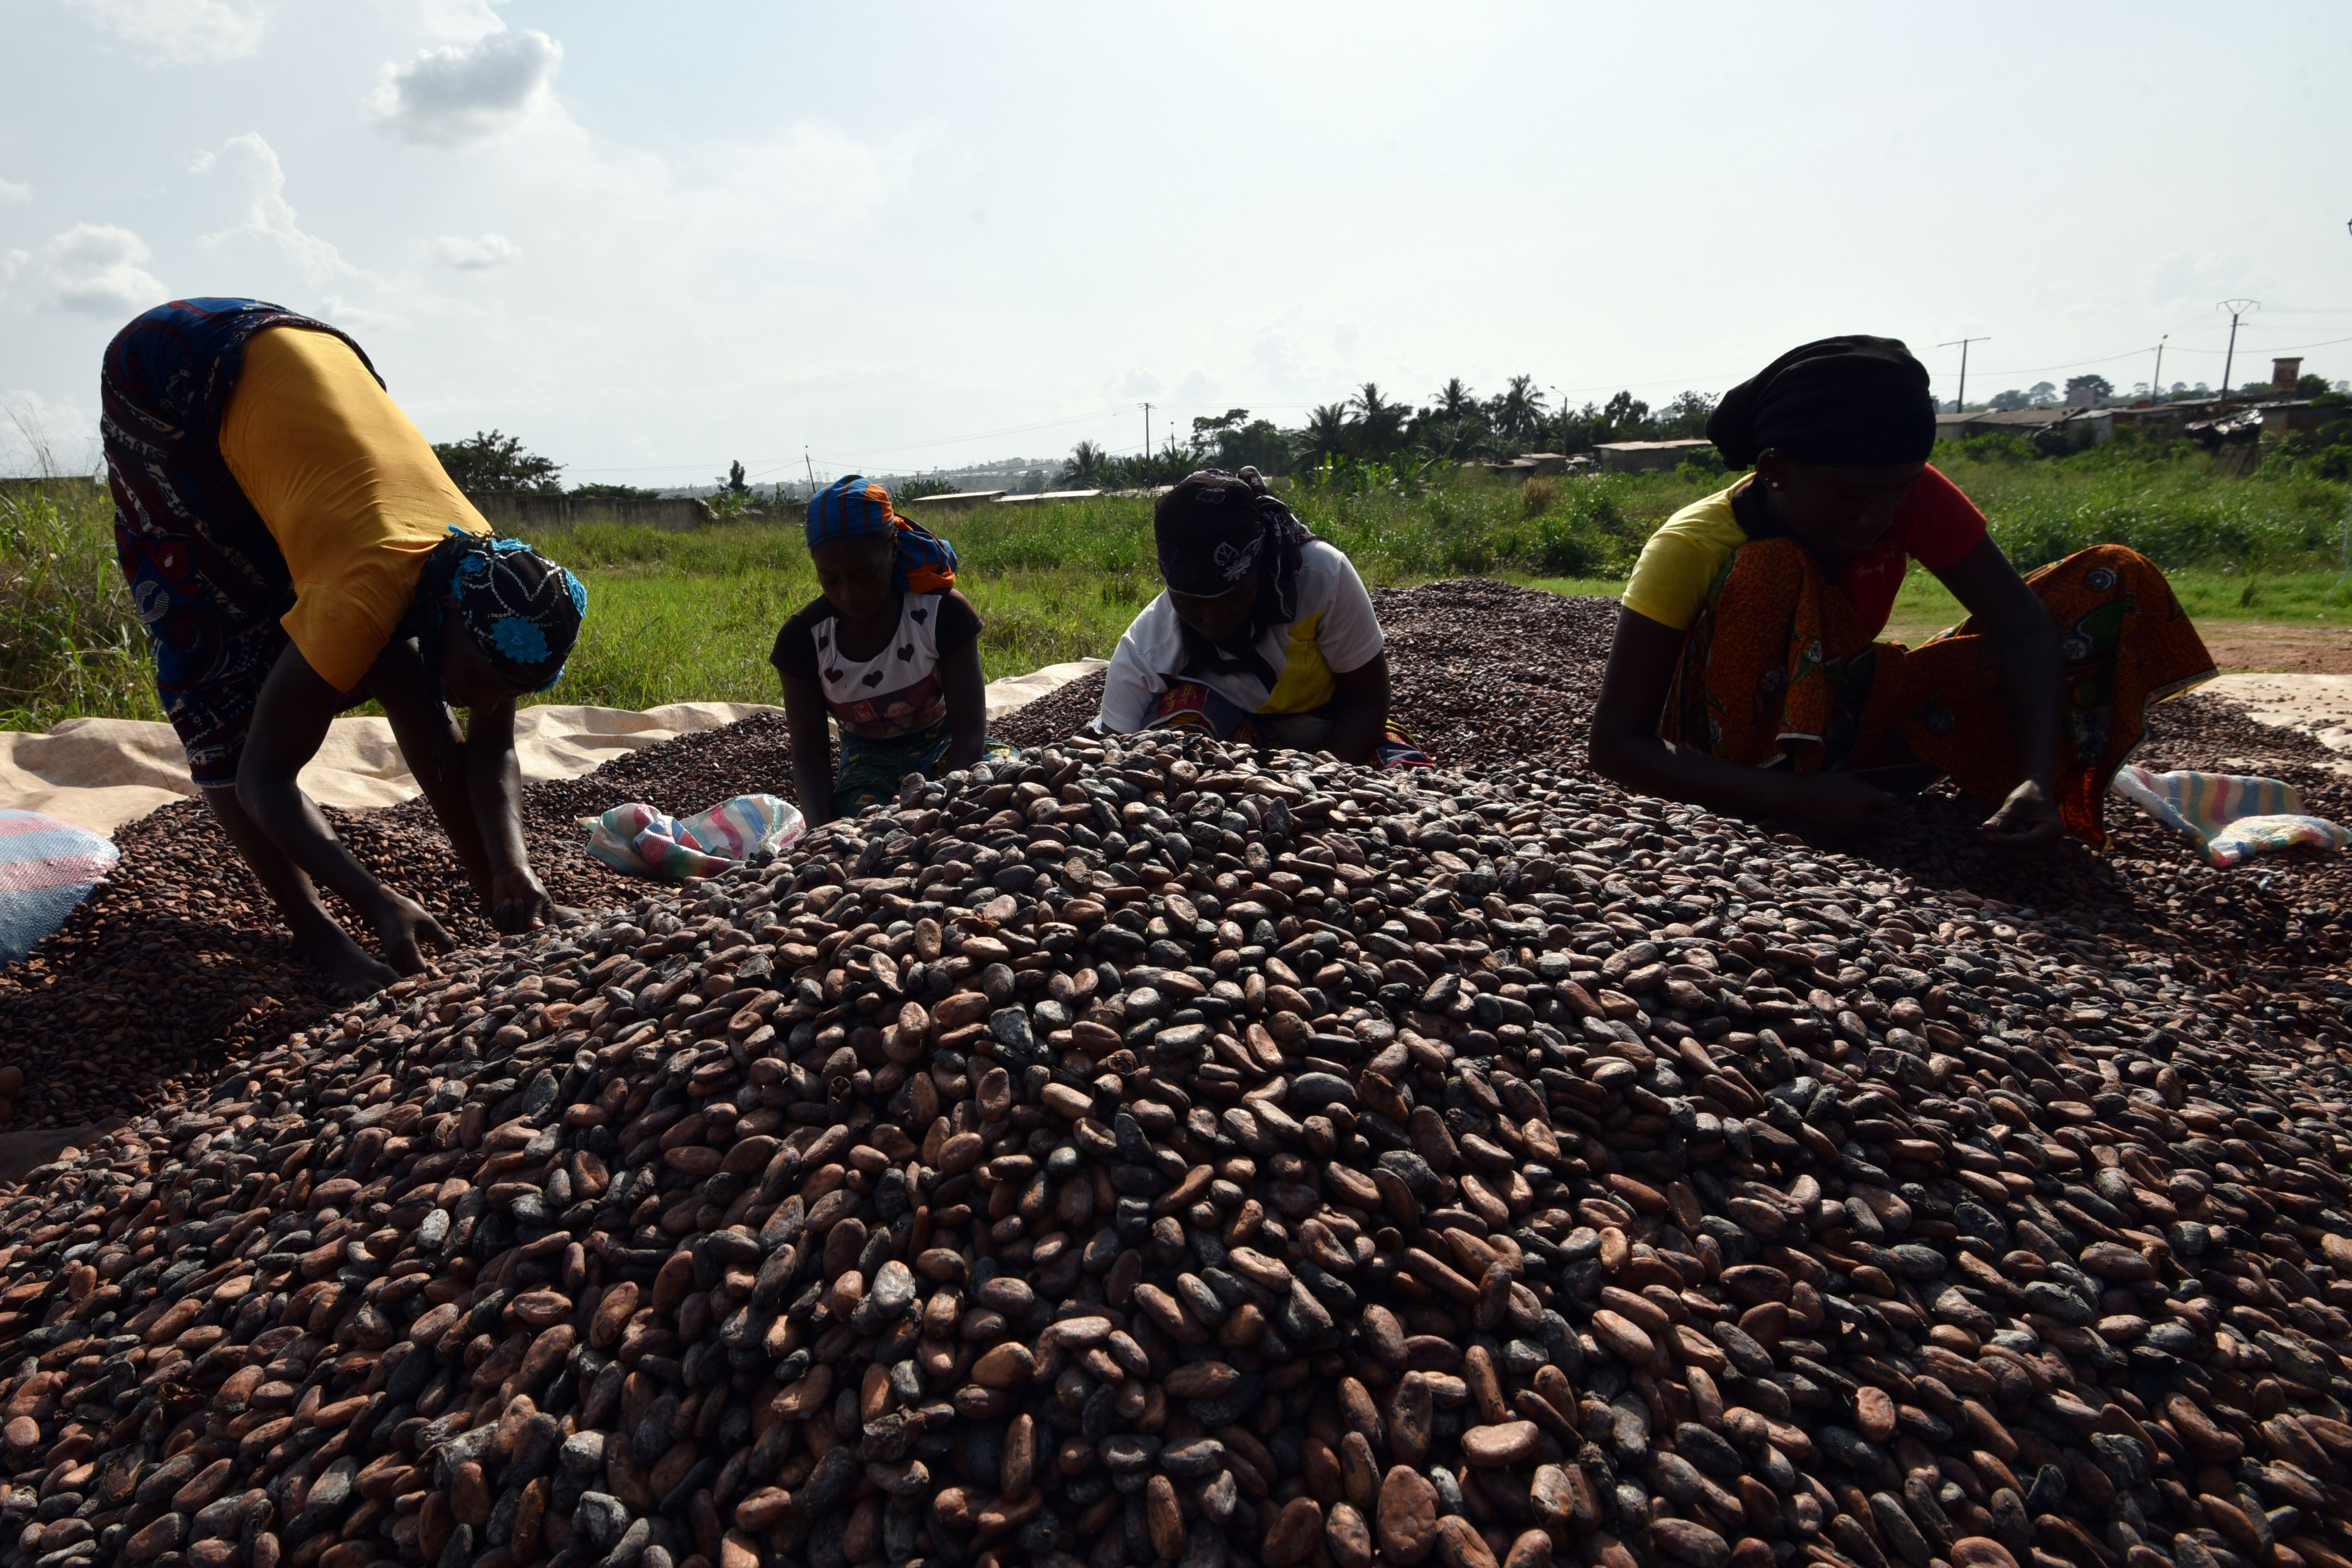 Women sort out cacao beans in Soubre, Ivory Coast on March 6, 2017.